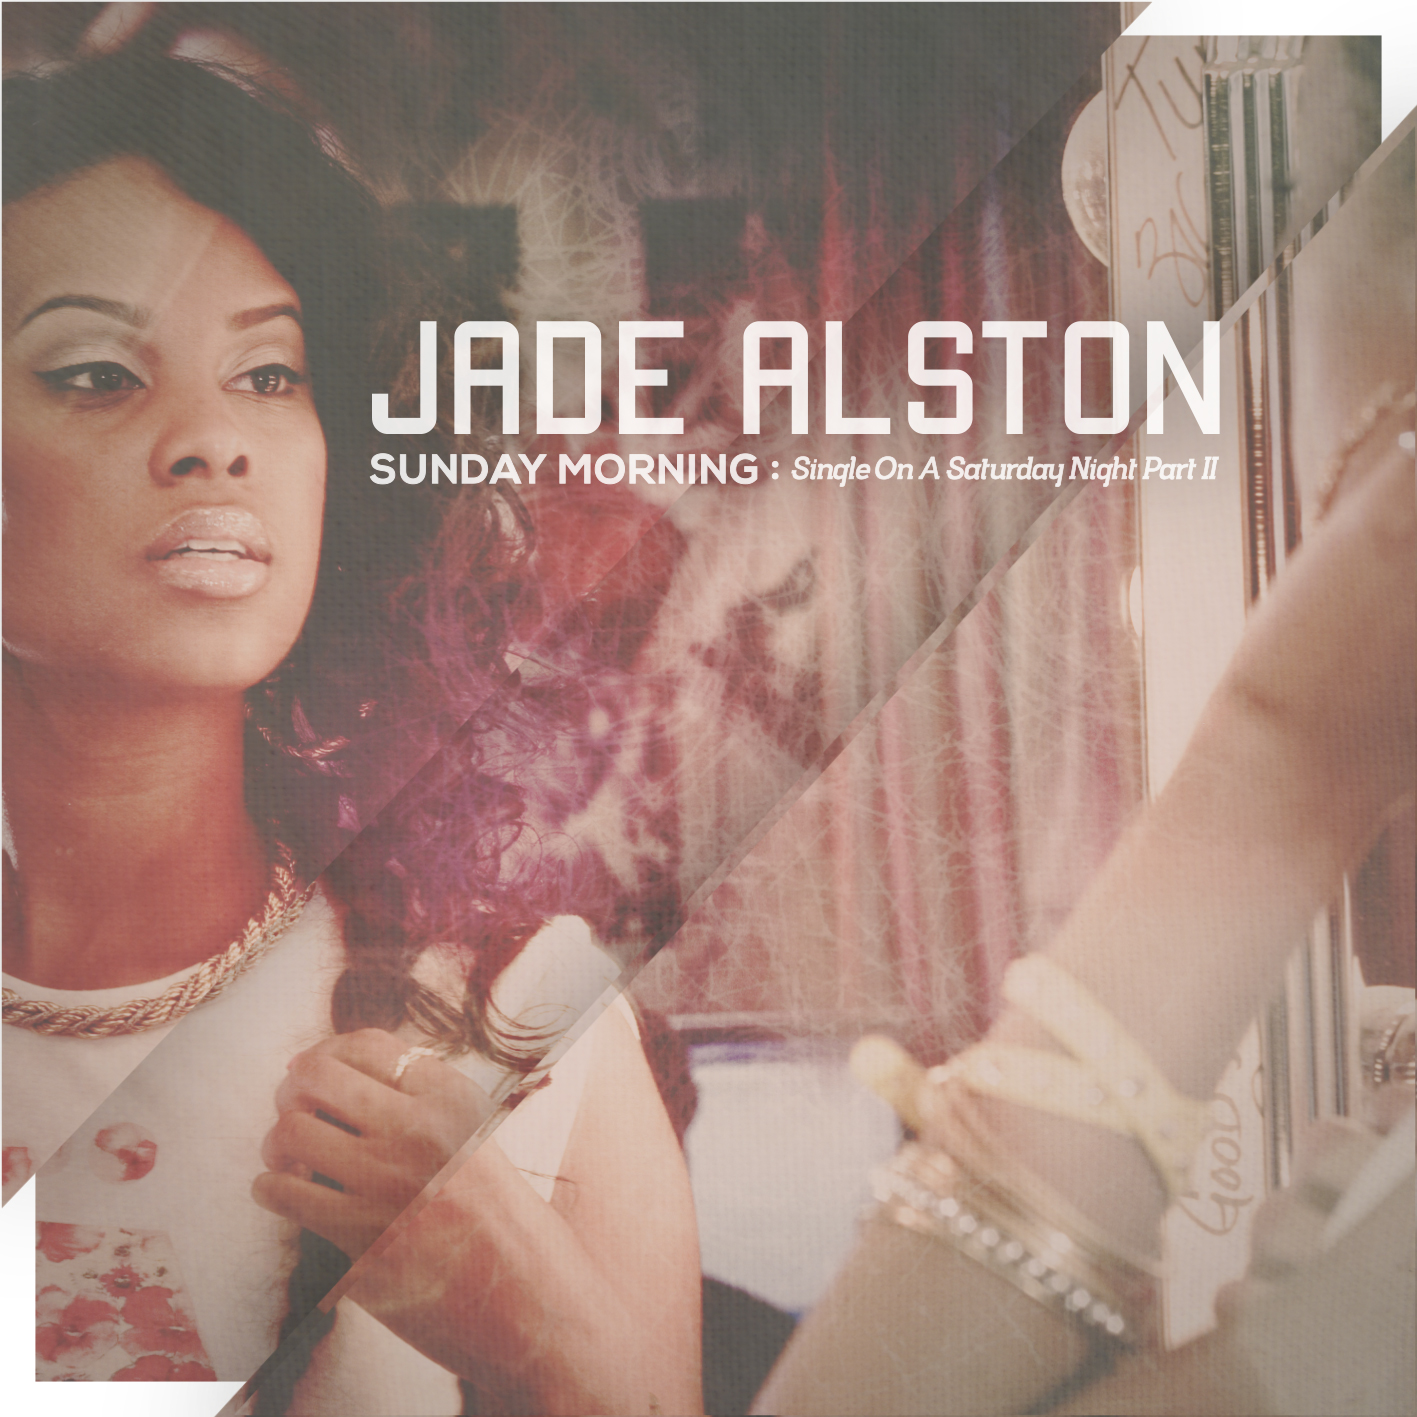 jade-alston-sunday-morning-single-on-a-saturday-night-pt-2-ep-cover-HHS1987-2013 Jade Alston (@JadeAlston) - Sunday Morning: Single on A Saturday Night Pt. 2 (EP)